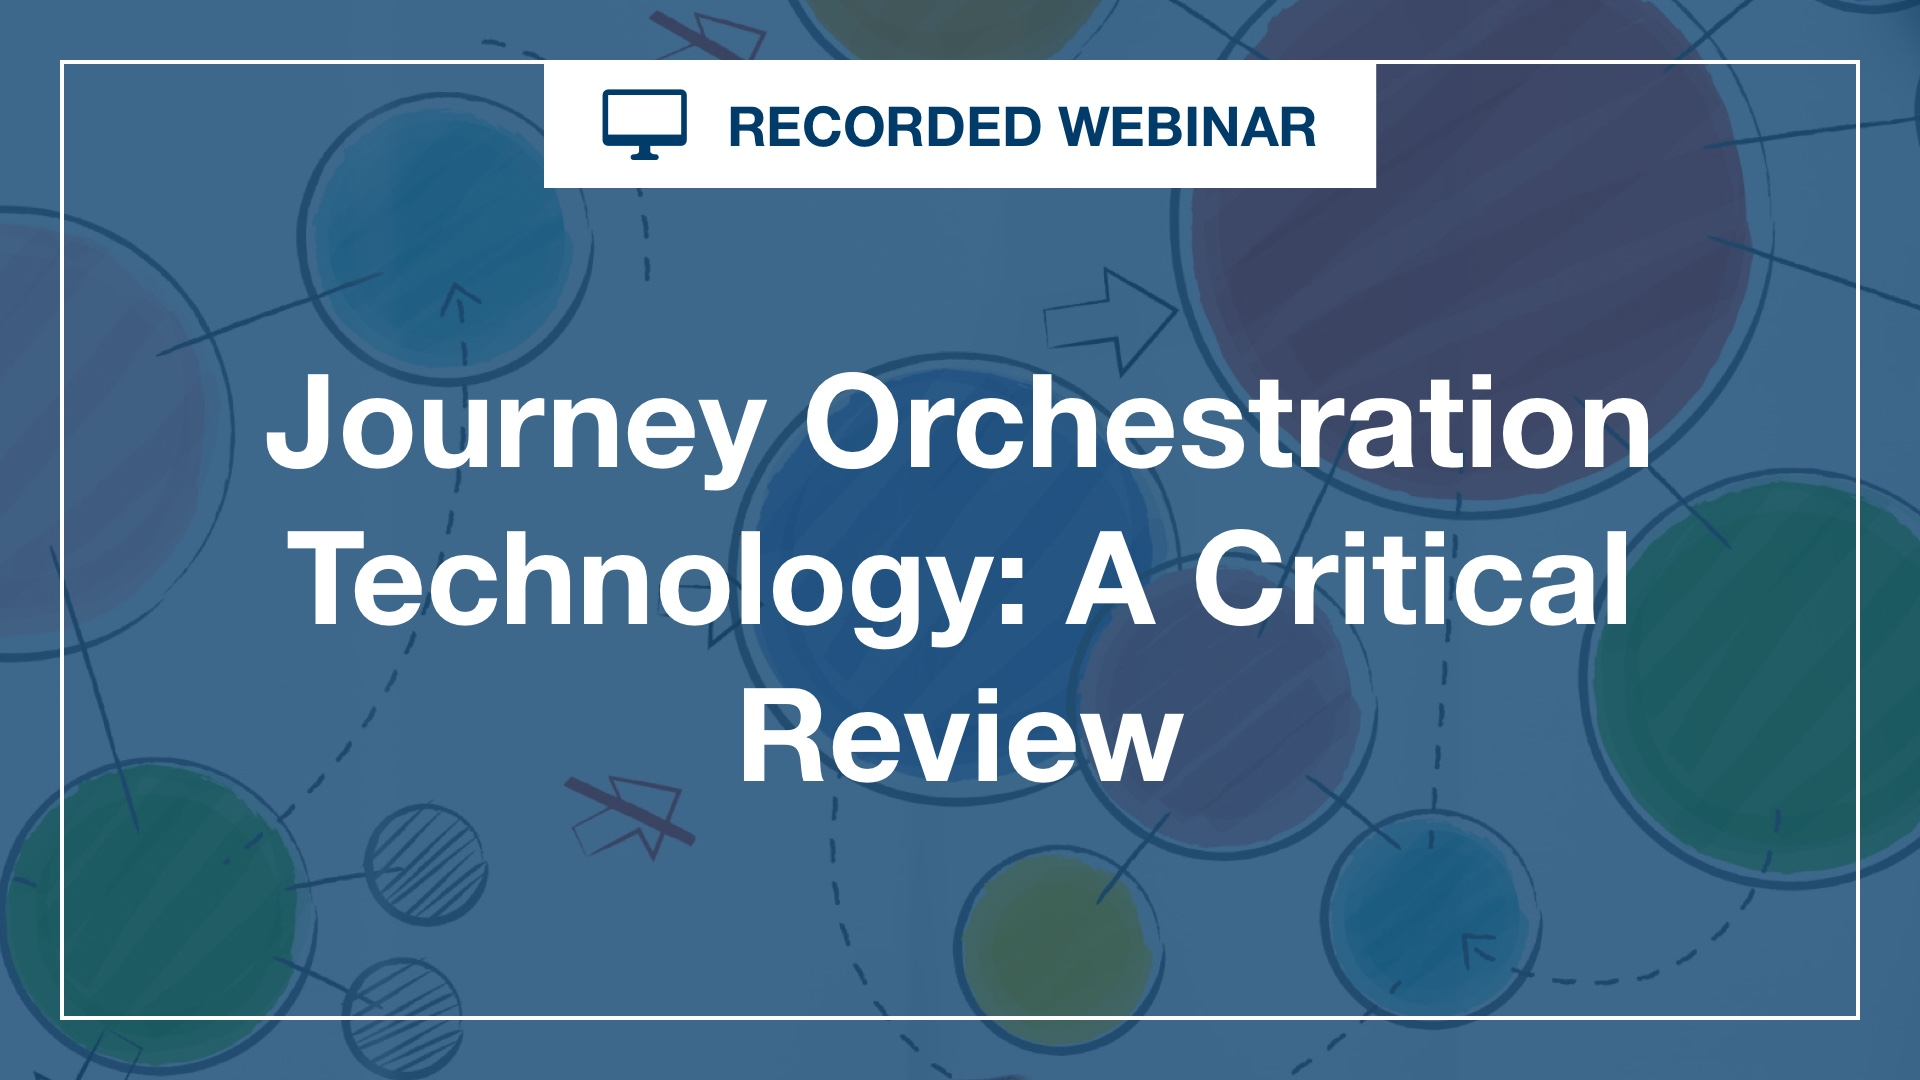 Journey Orchestration Technology